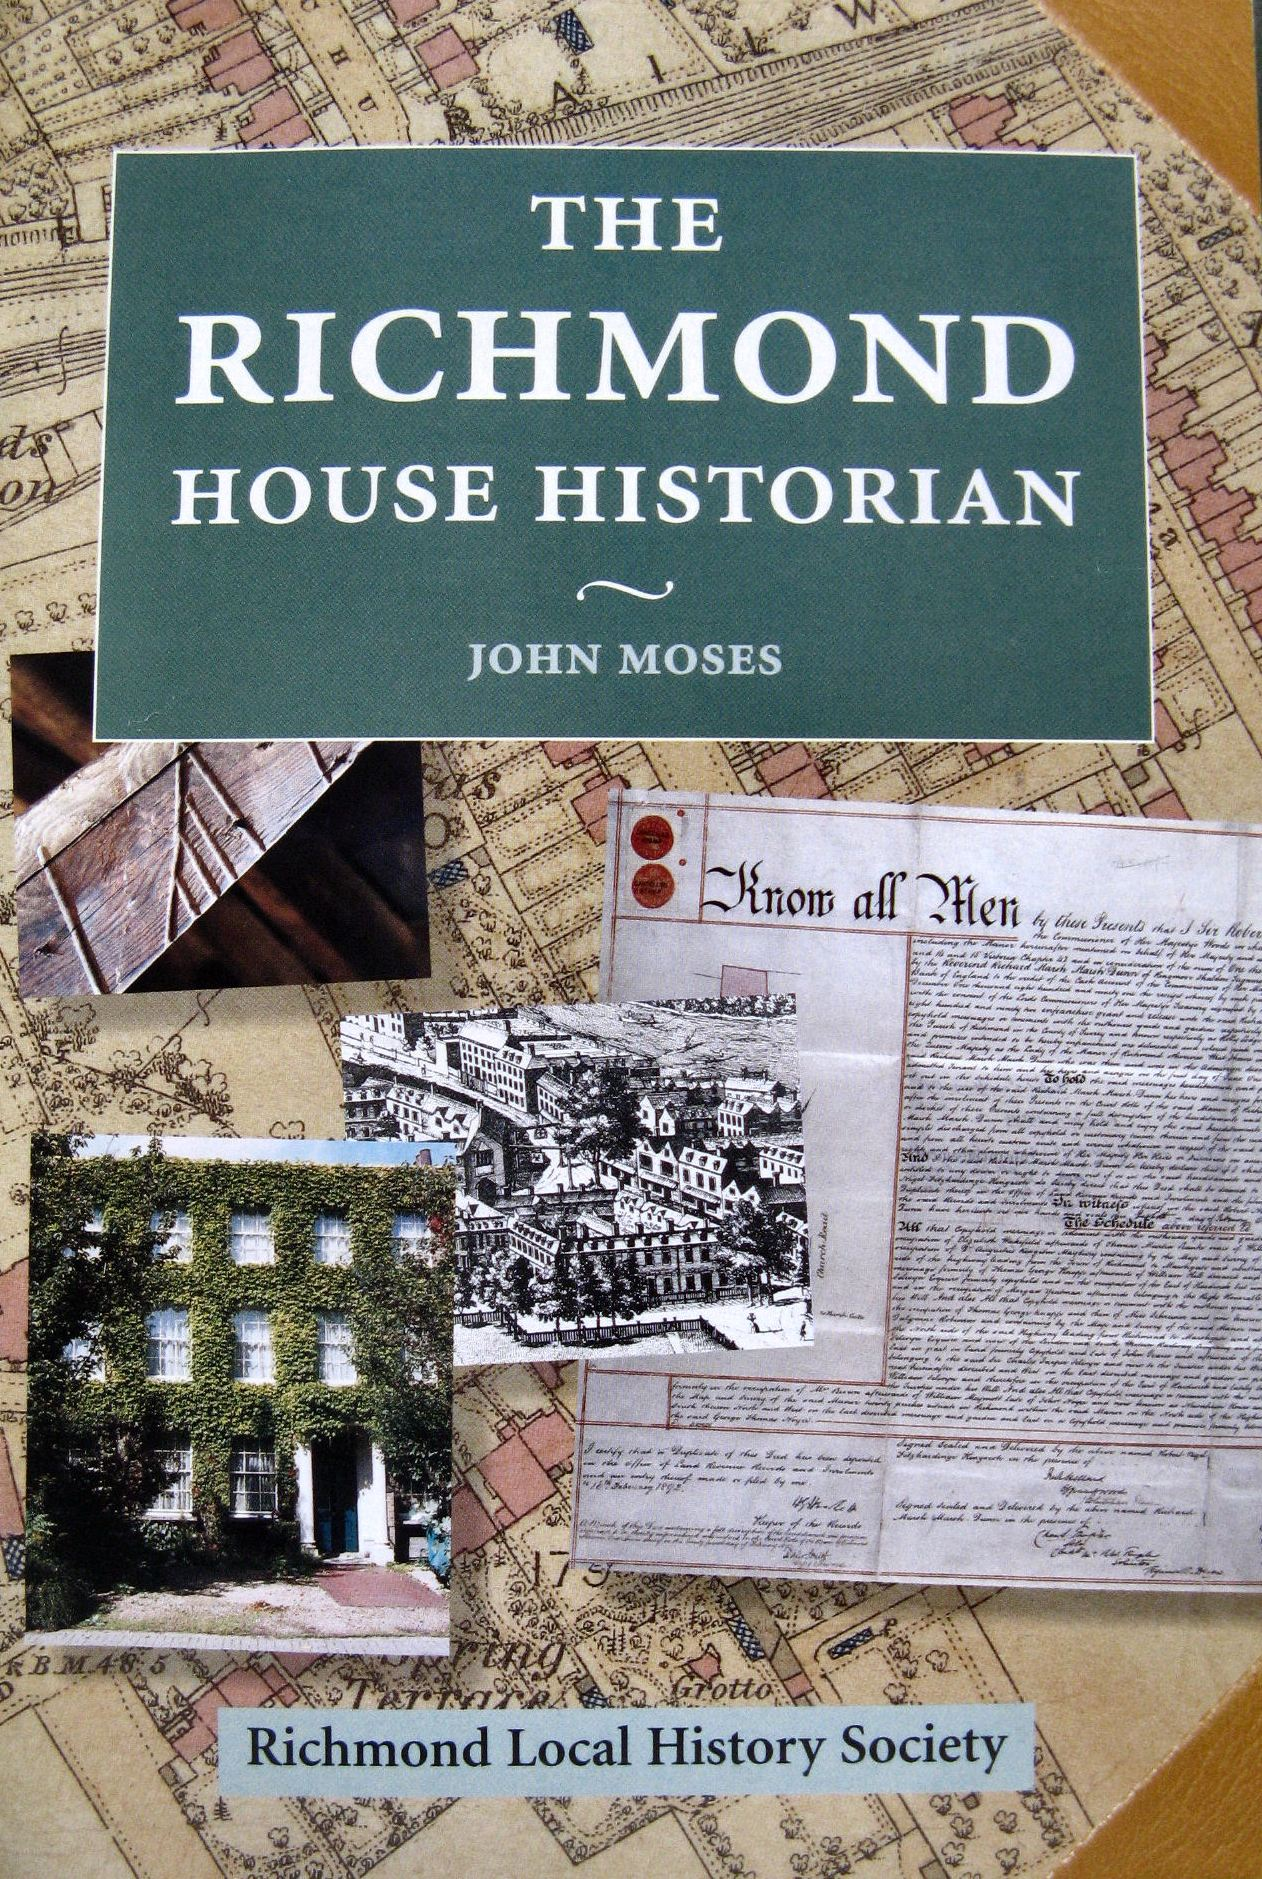 House Historian Books RLHS 22 feb 2015 002 - Copy